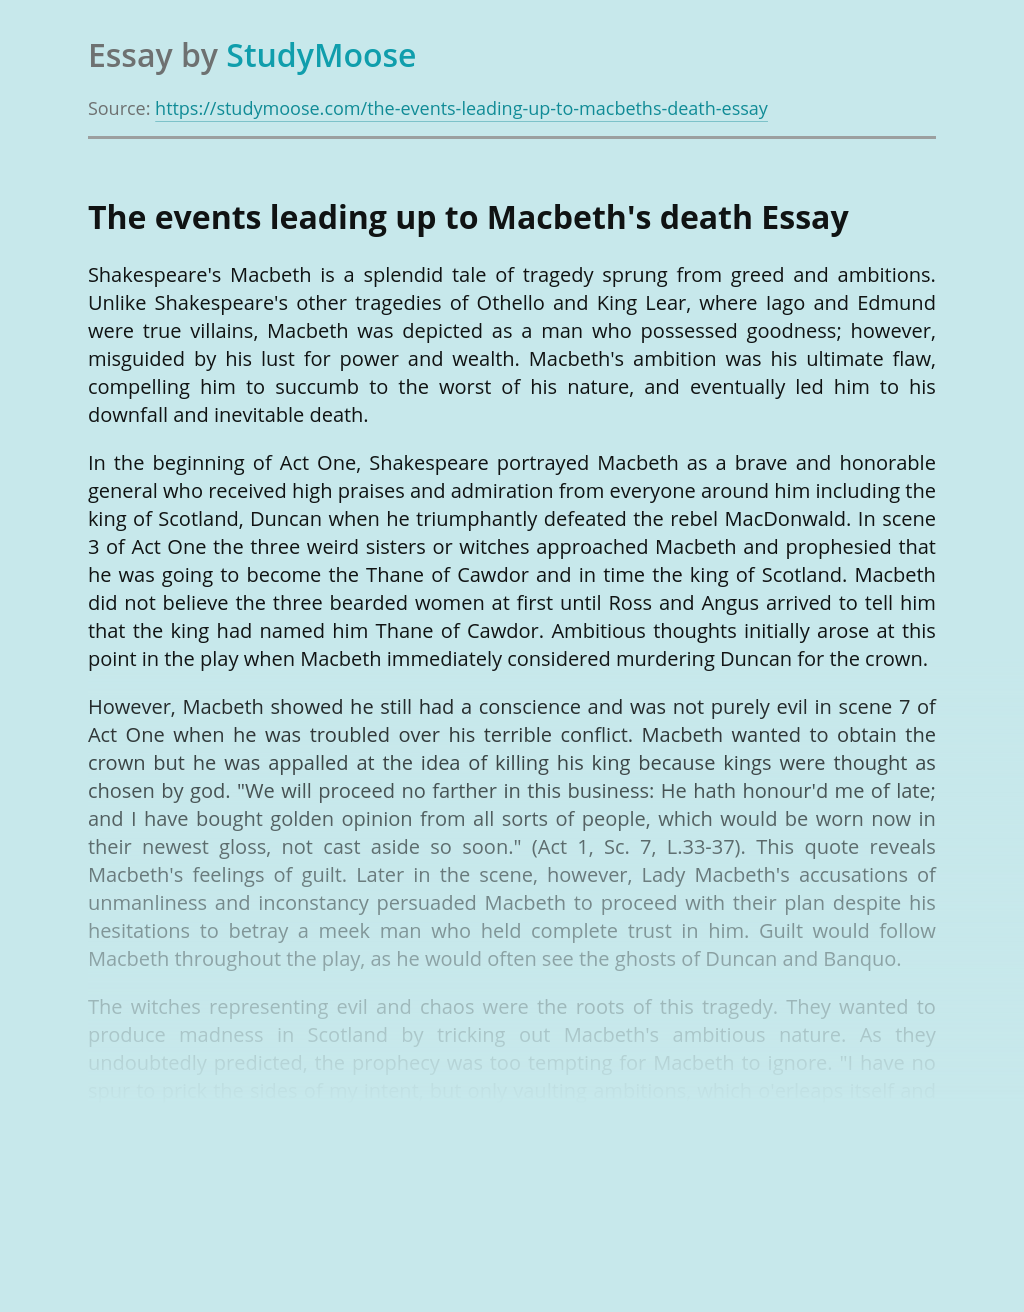 The events leading up to Macbeth's death